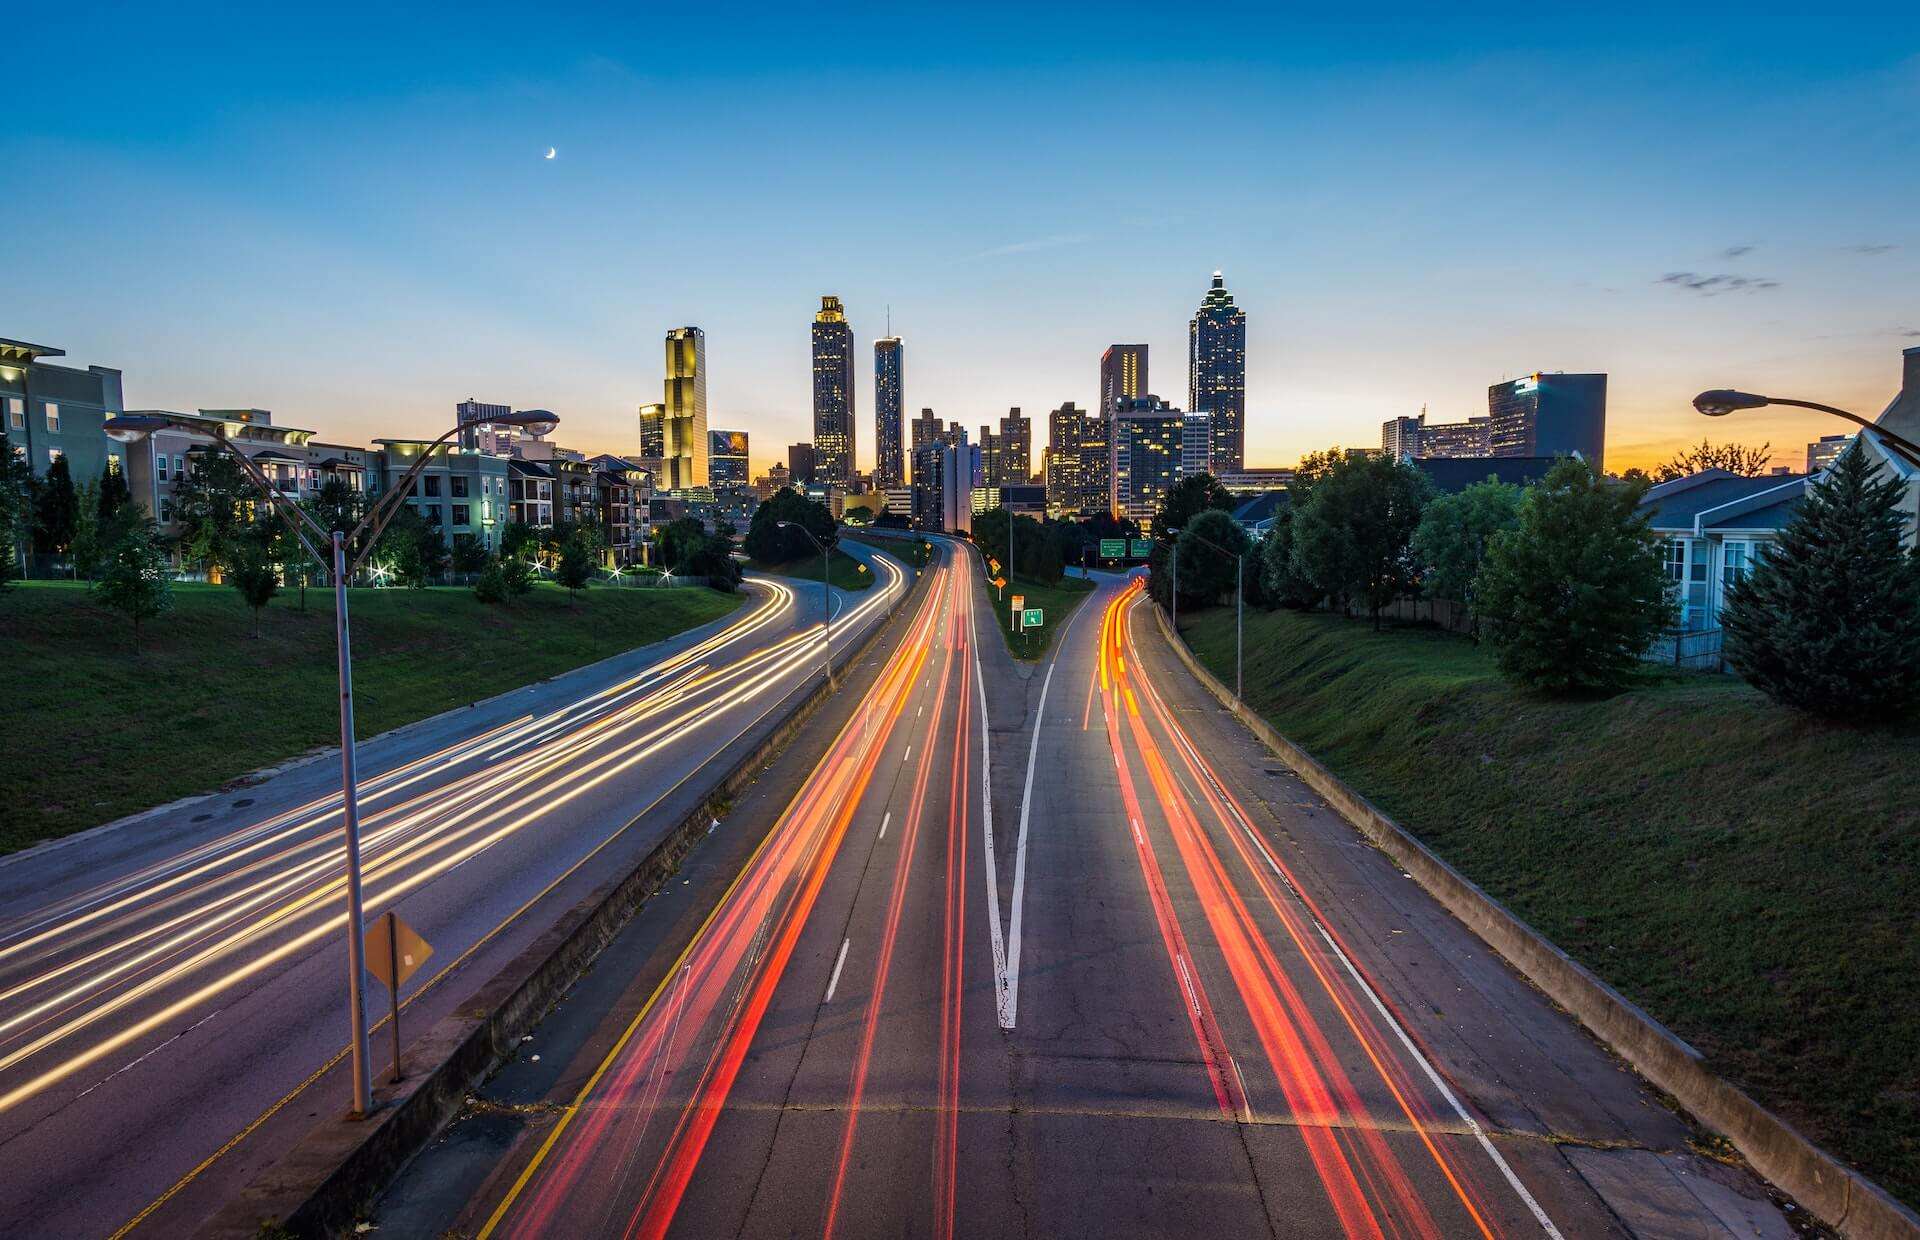 City with interstate, car lights stretched with overexposure